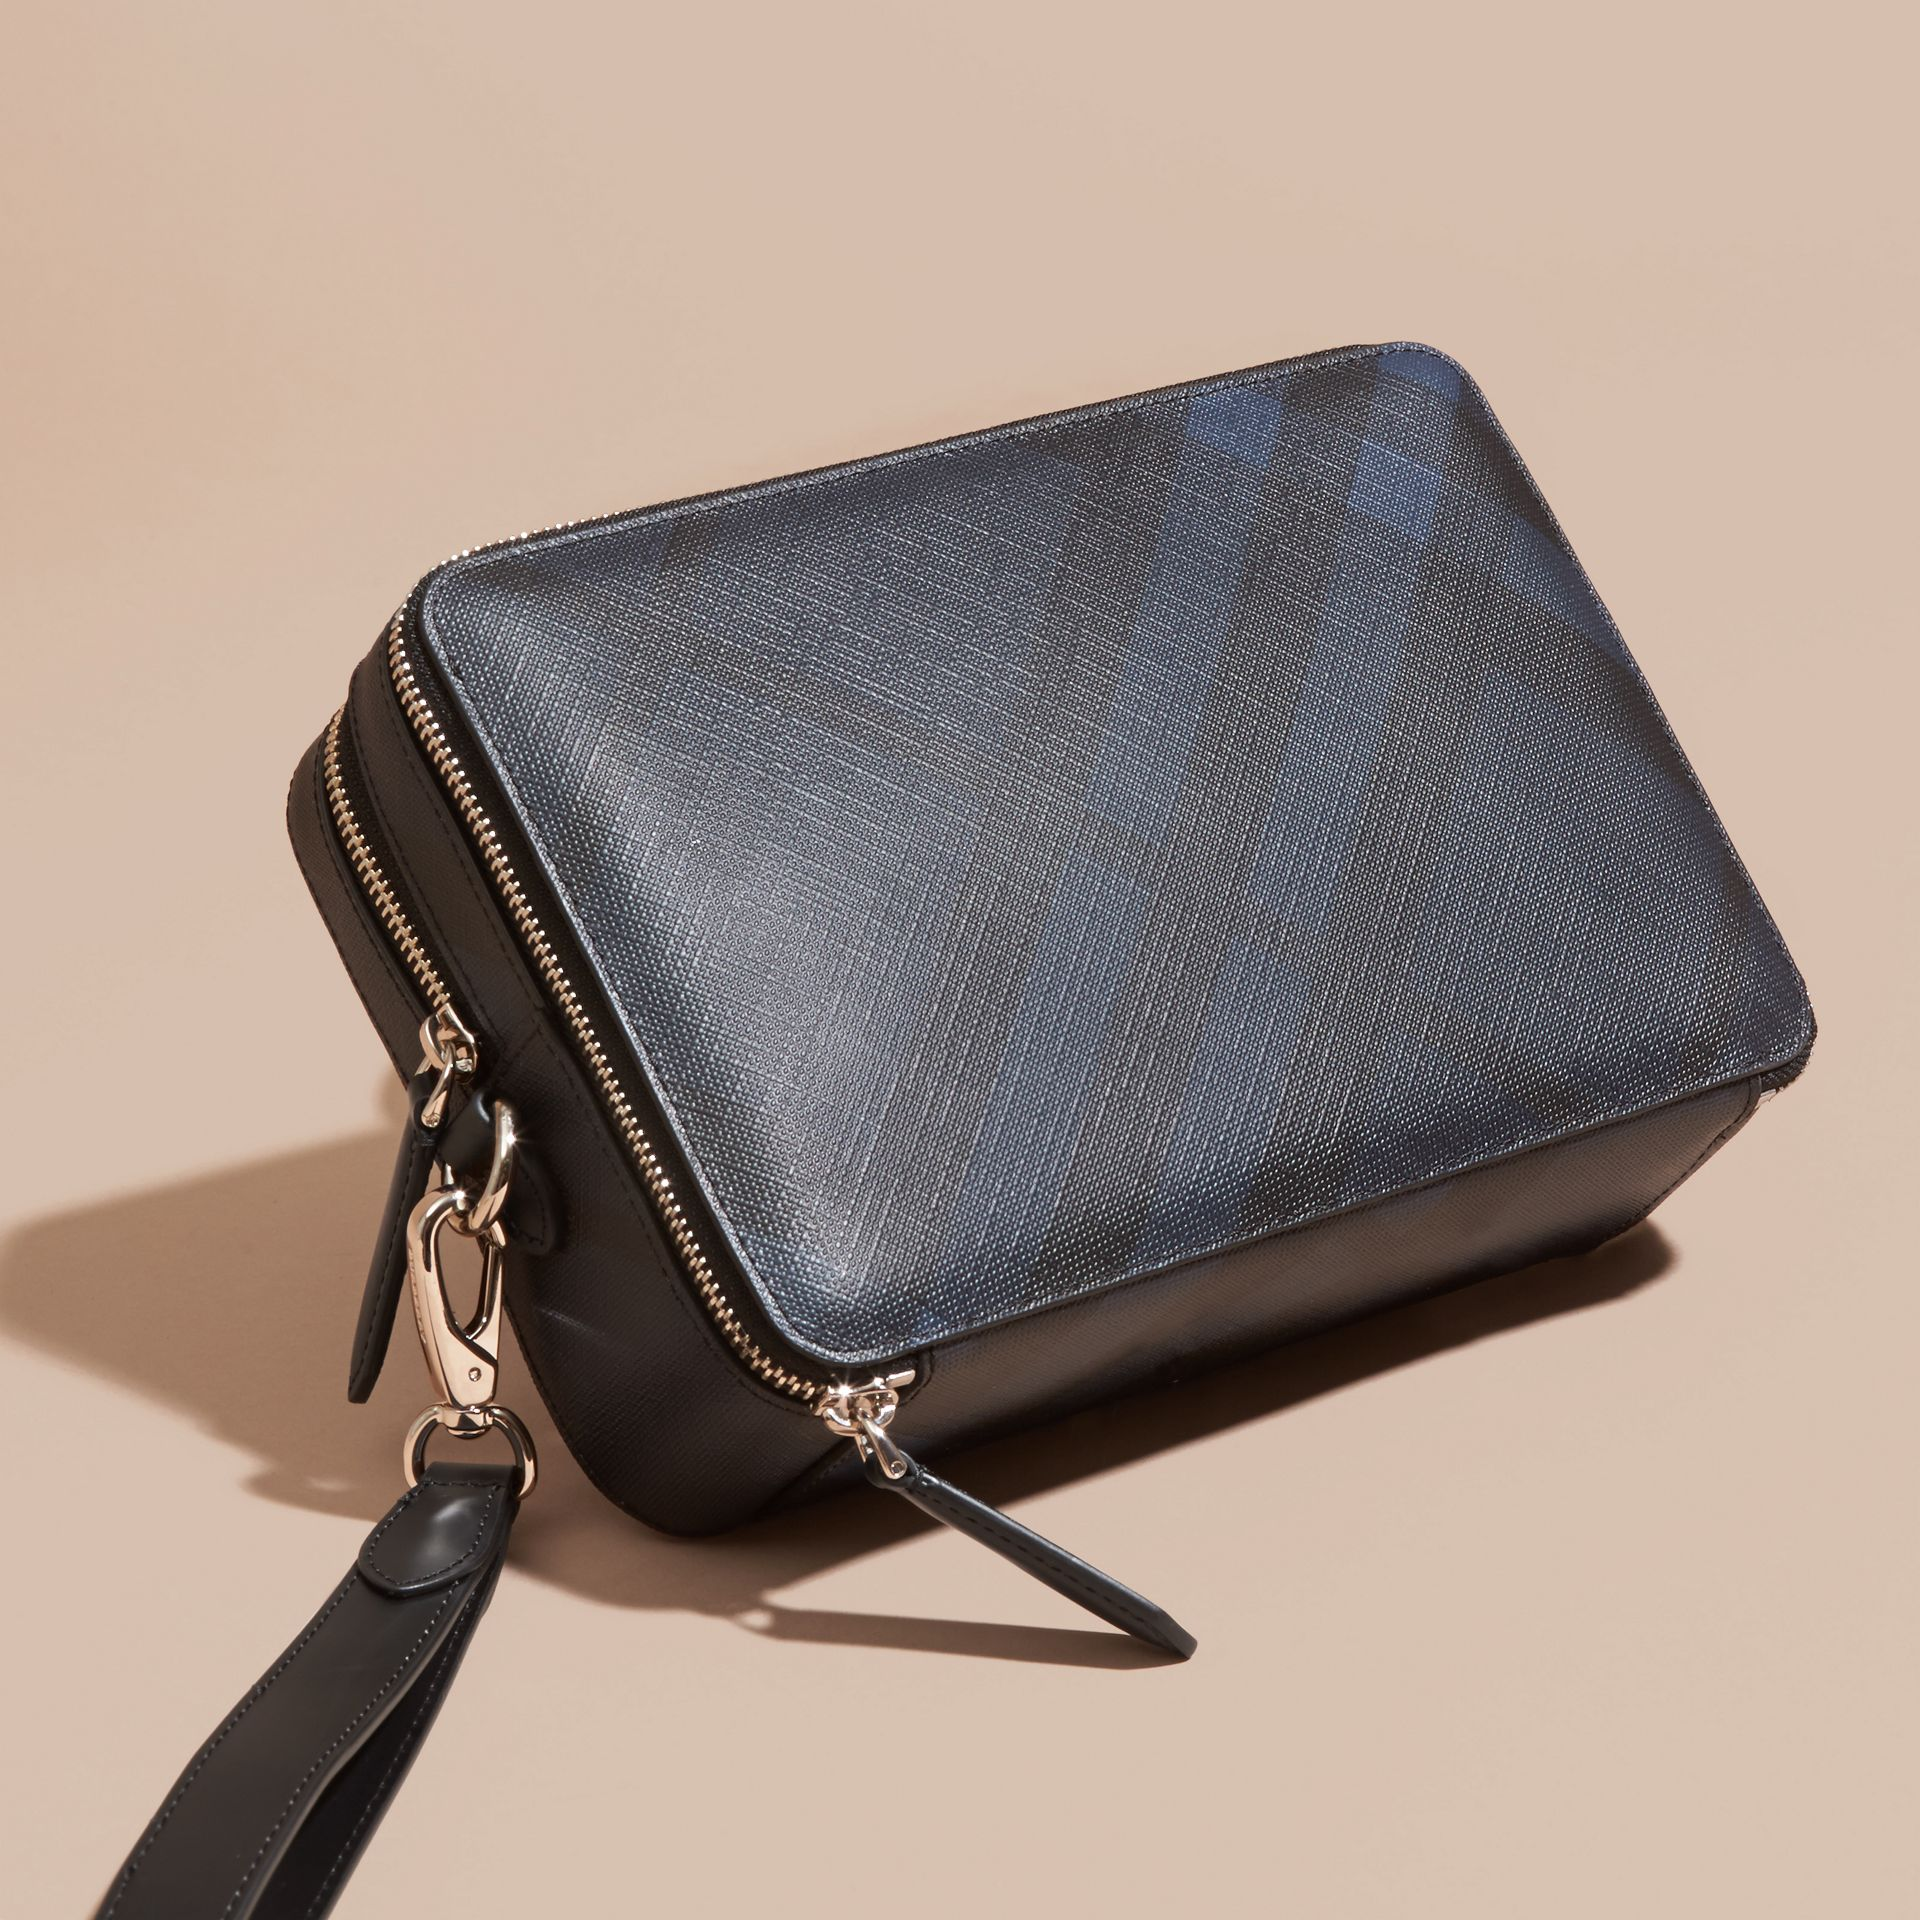 Leather-trimmed London Check Pouch in Navy/black - Men | Burberry Australia - gallery image 5